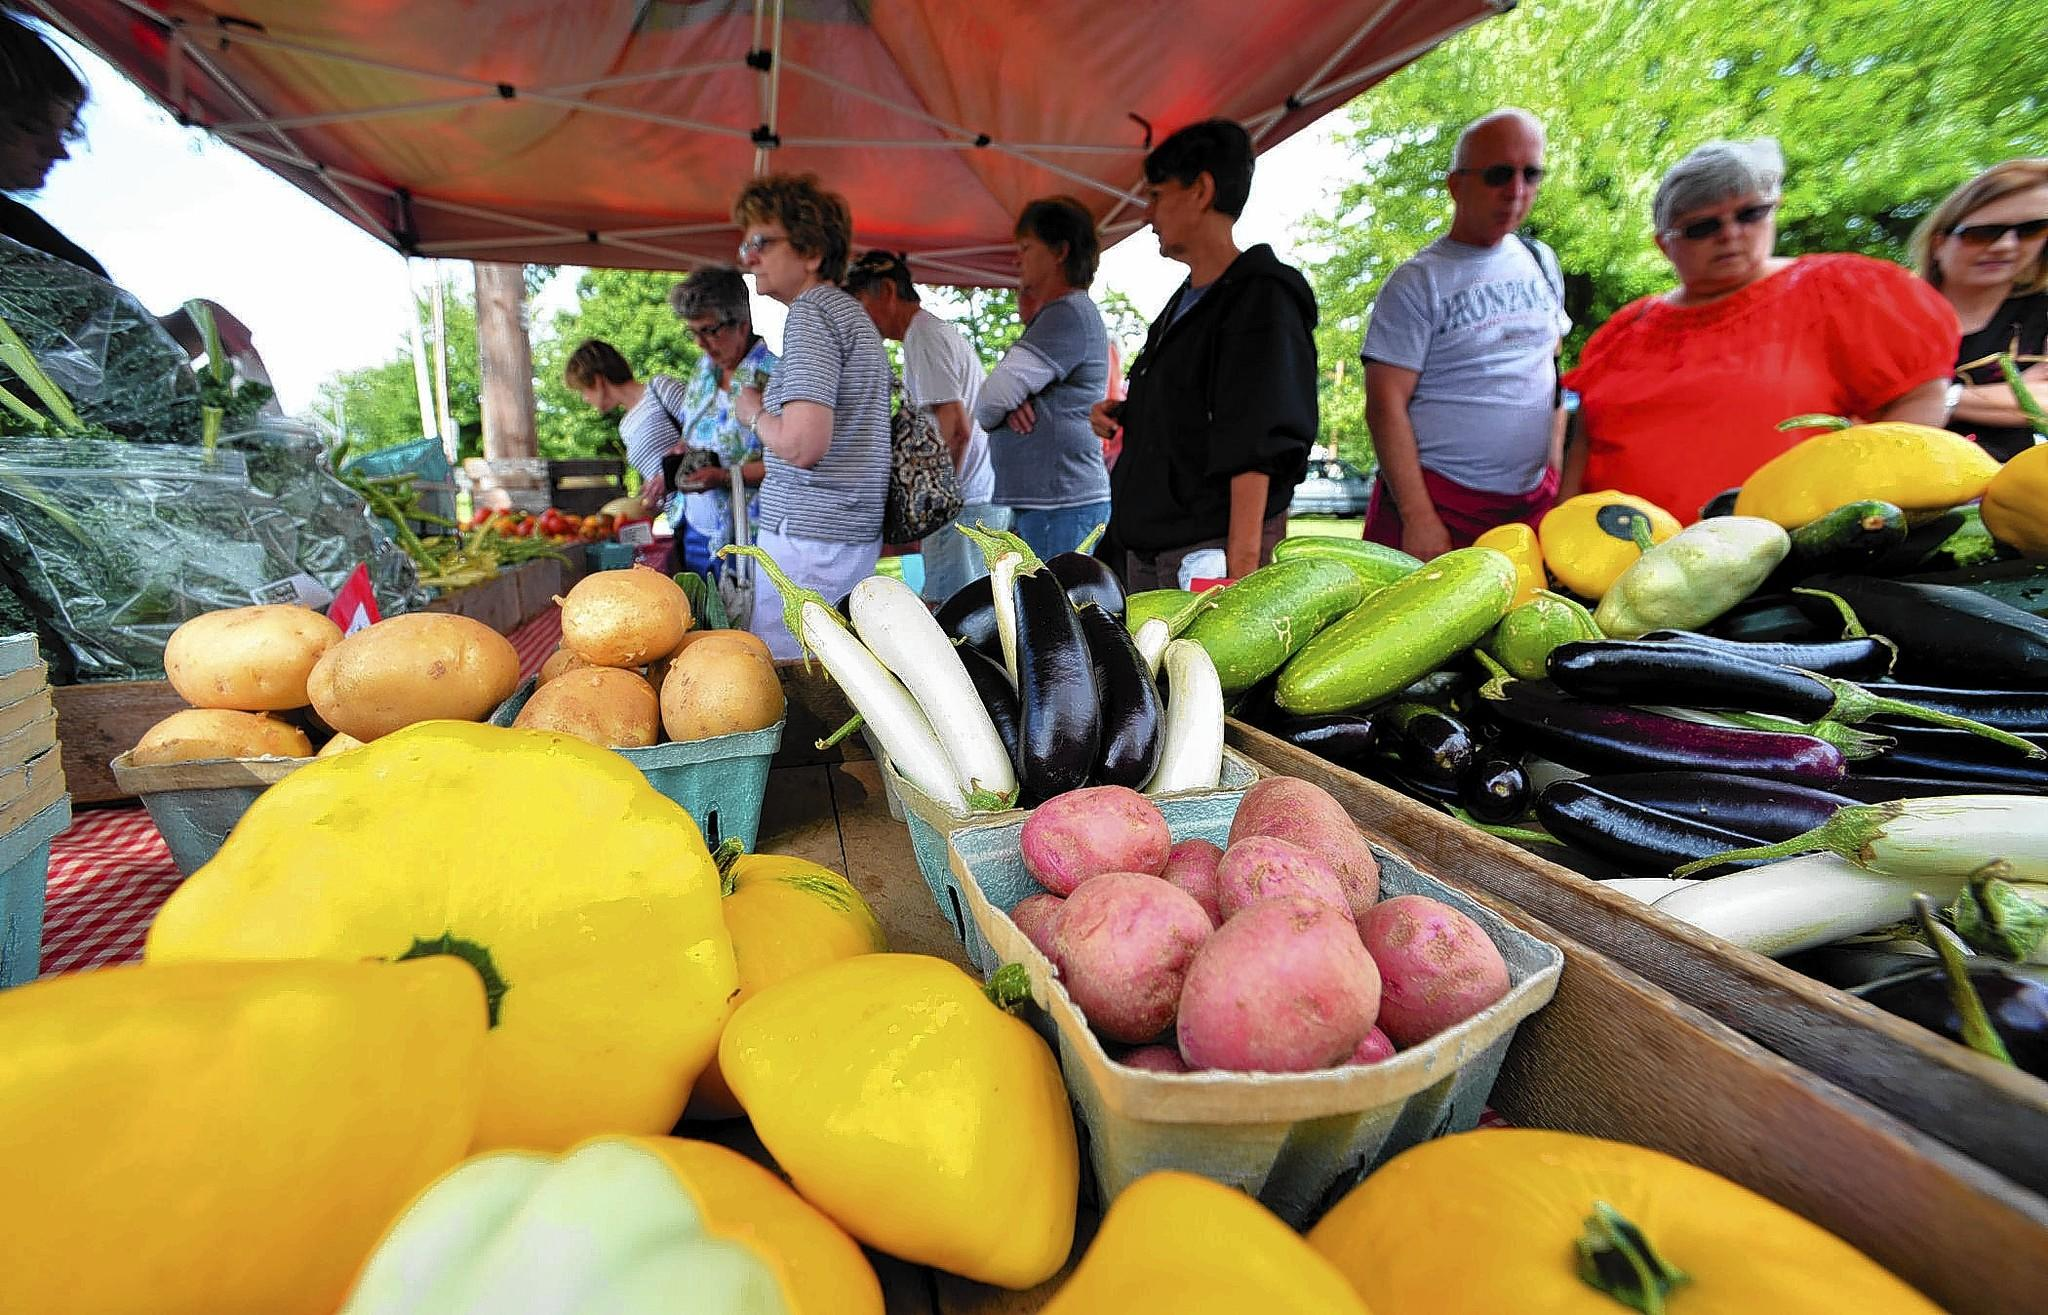 Buying food at local farmers markets, such as this one in Macungie, contributes to the local economy.